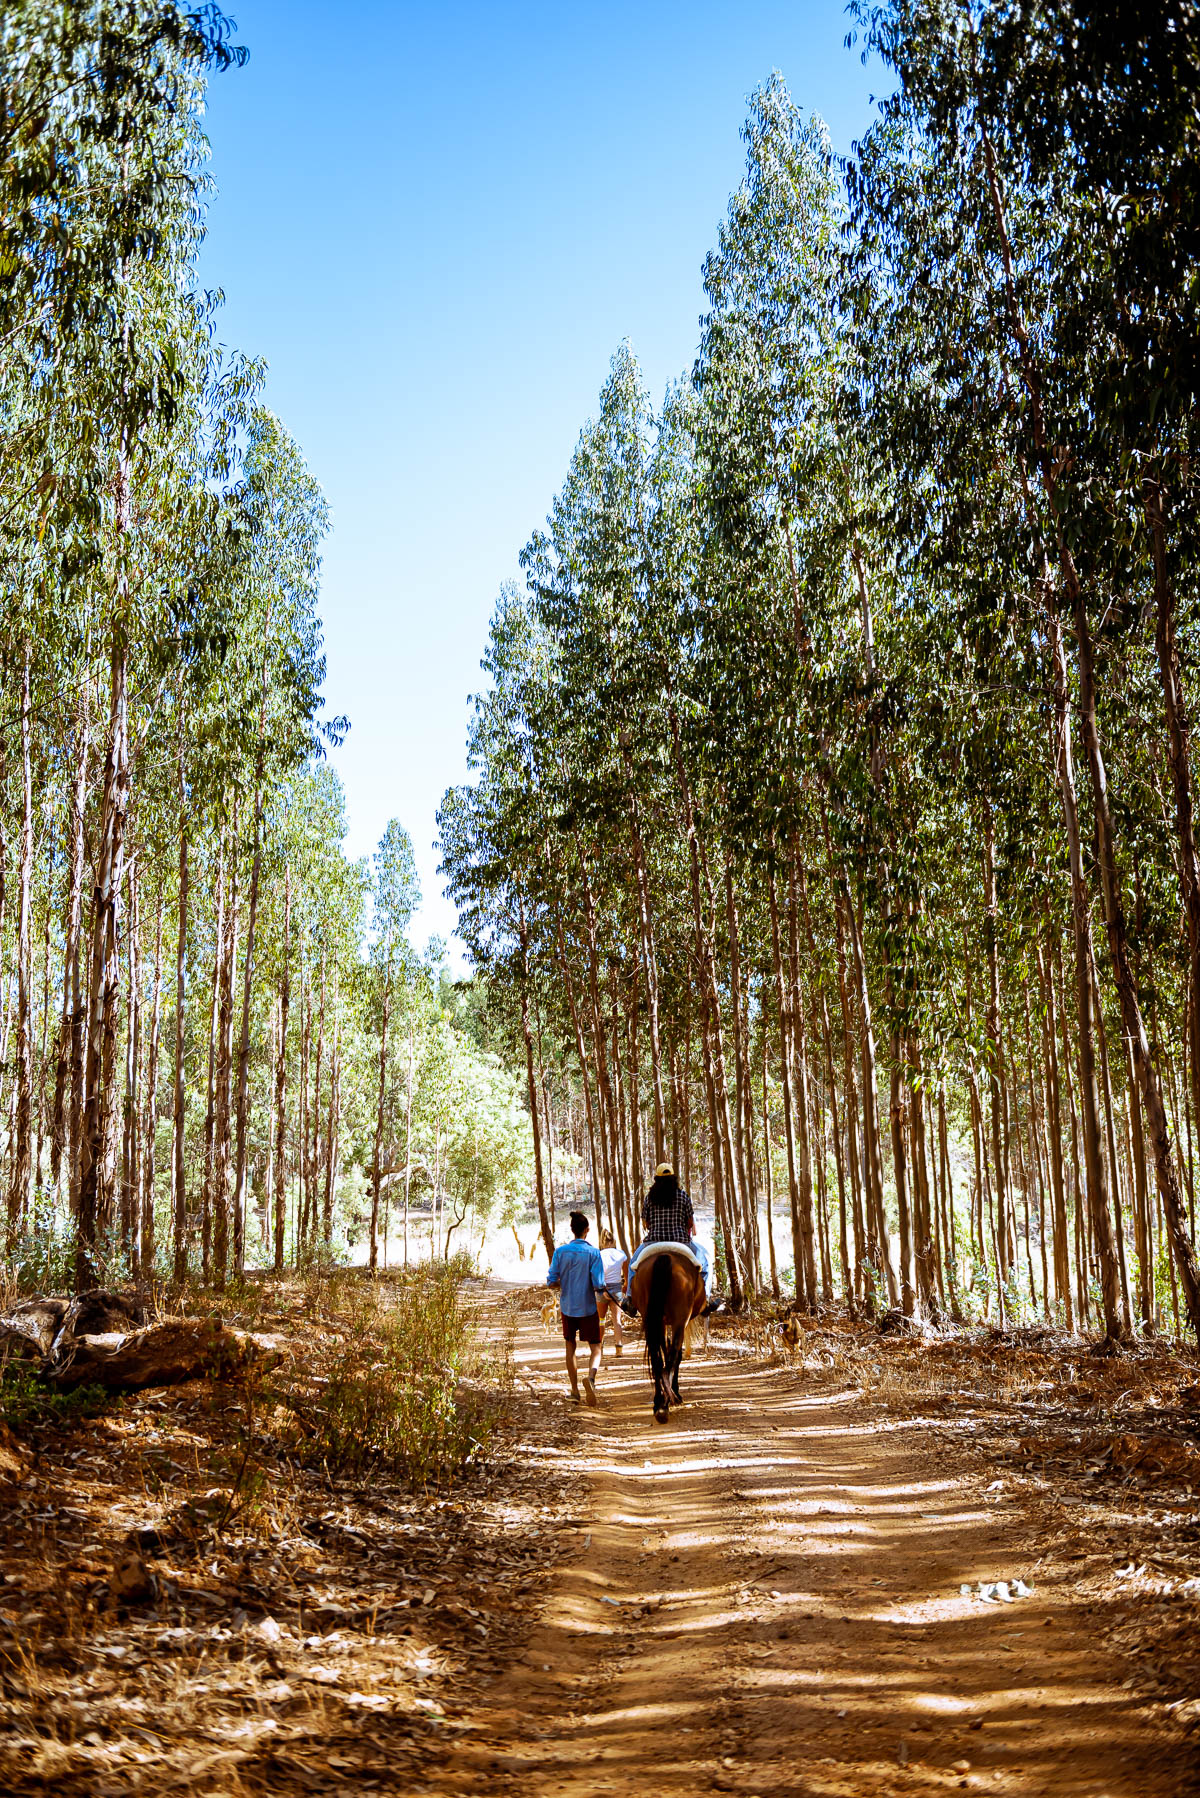 Example of leading lines in travel photography, trees and path